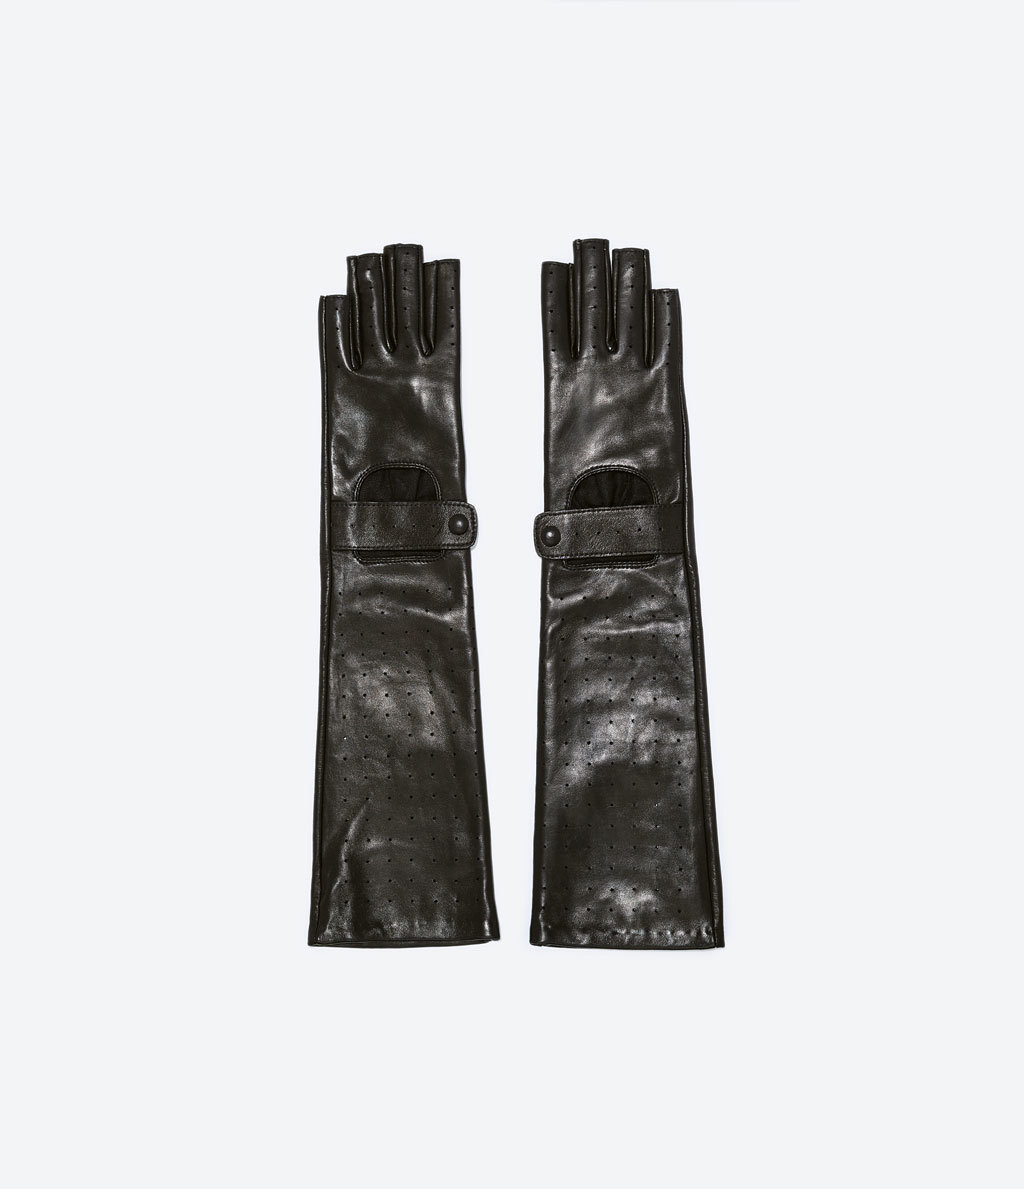 Fingerless Gloves - predominant colour: black; occasions: casual, evening, creative work; style: fingerless; length: half; pattern: plain; material: faux leather; season: a/w 2014